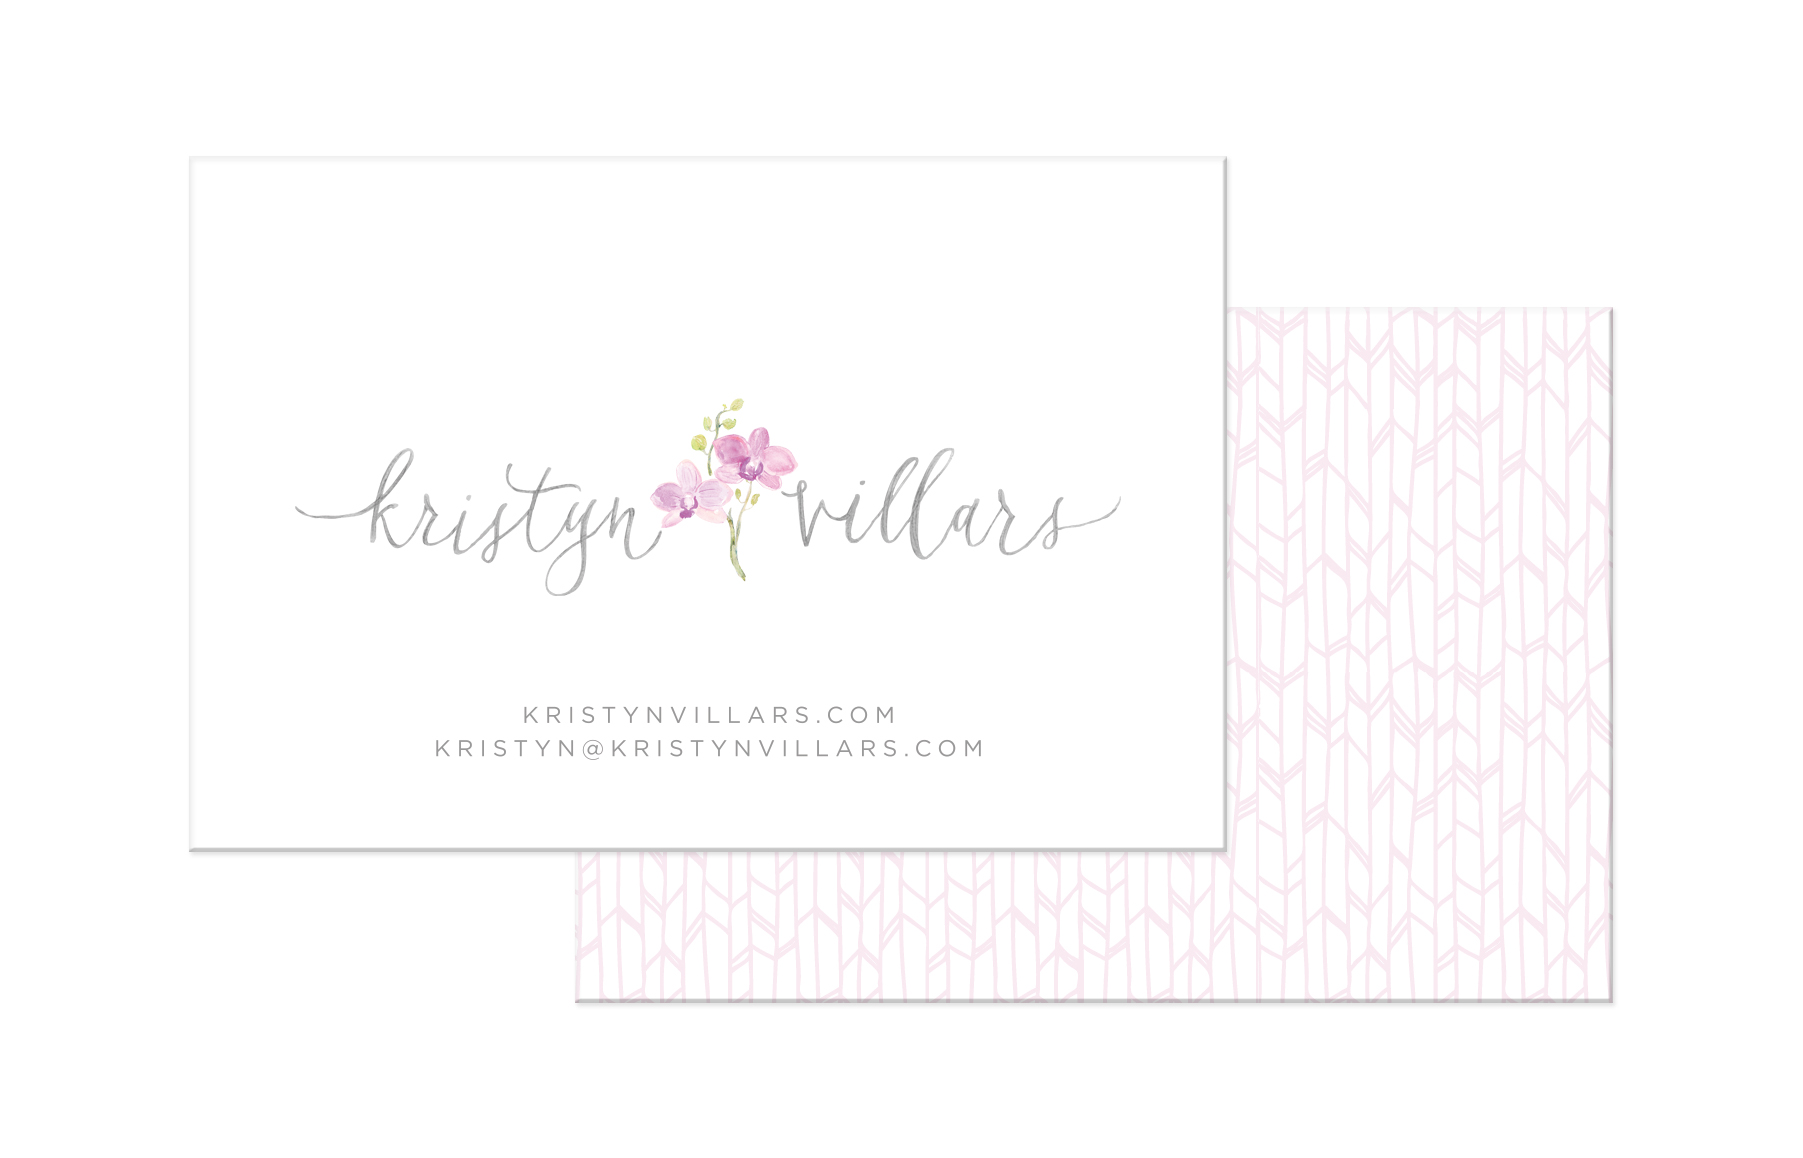 Kristyn Villars Photography - business card